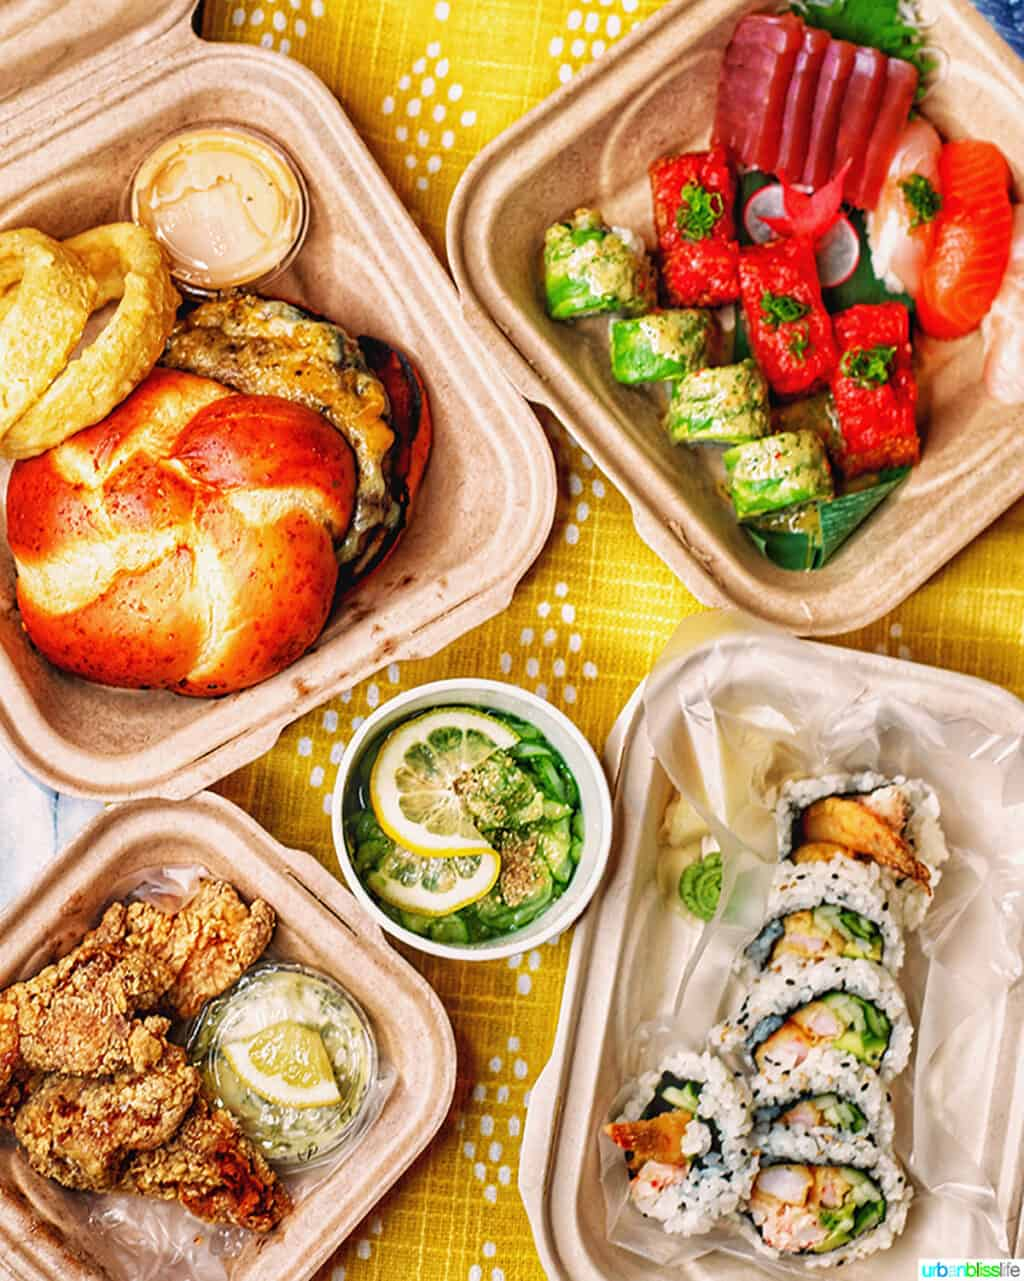 Bamboo Sushi take-out boxes